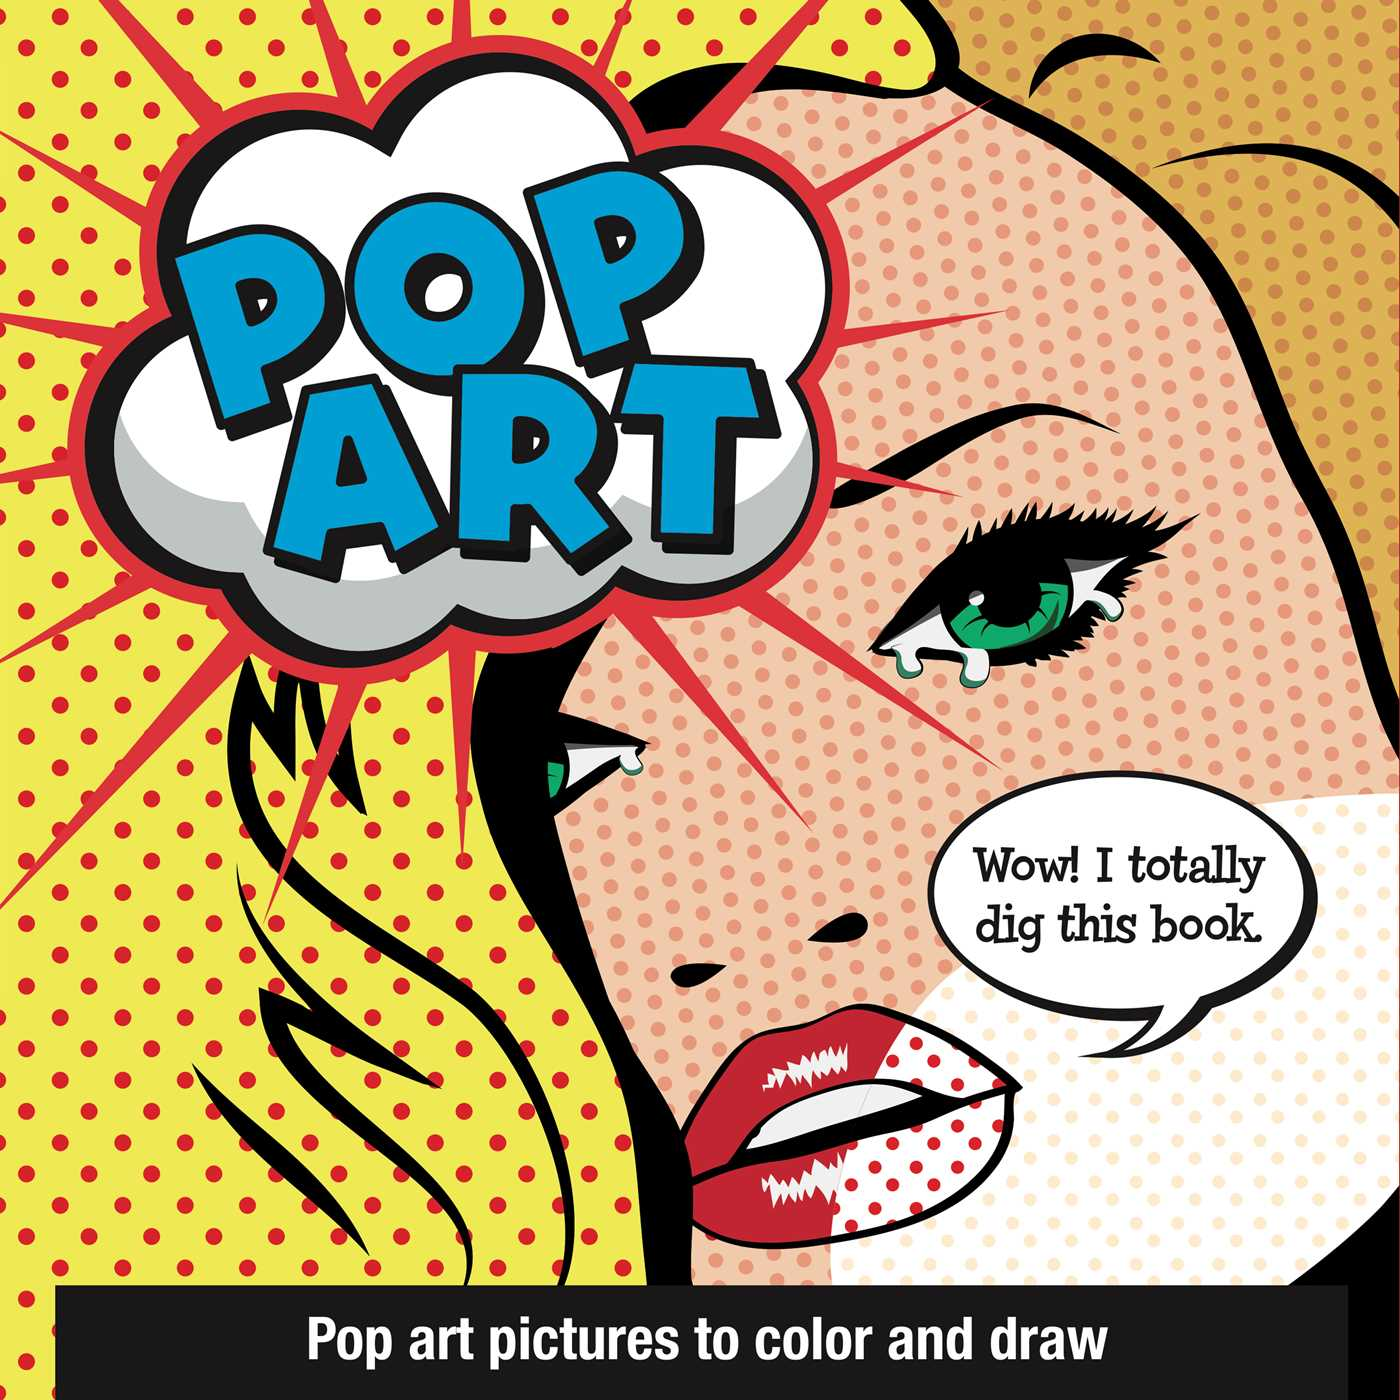 Book Cover Image Jpg Pop Art